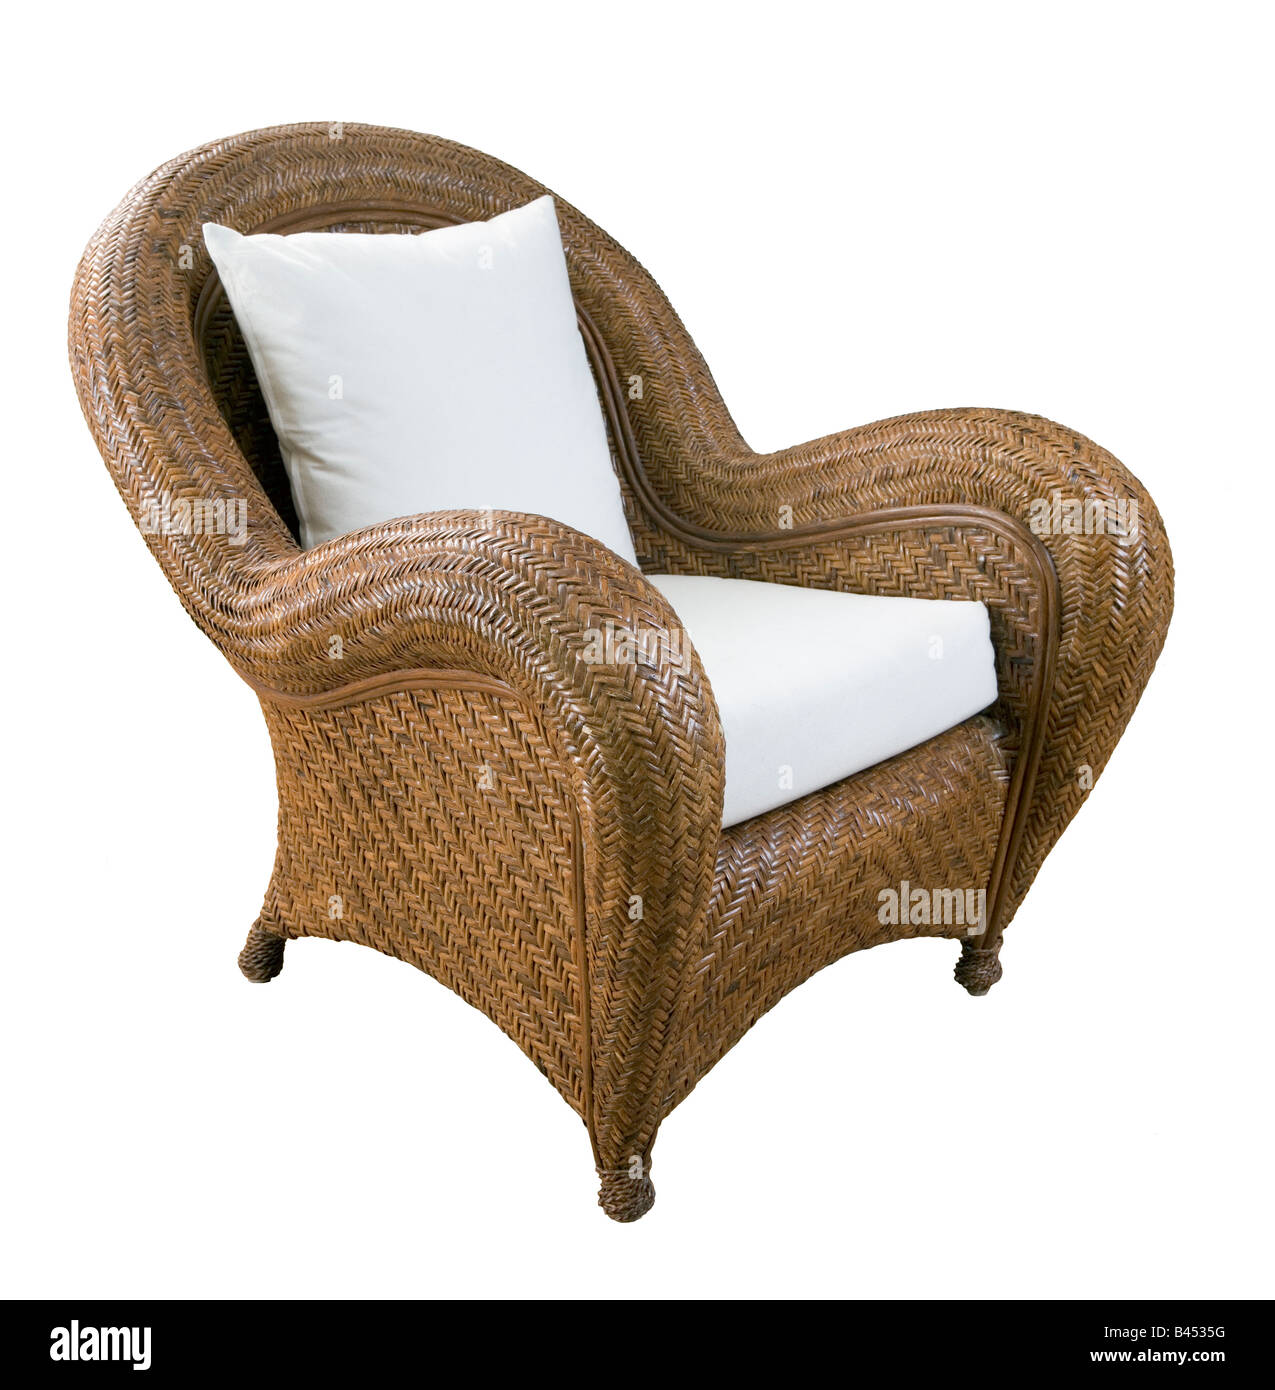 Wicker chair wicker chairs padma s plantation children for Wicker furniture